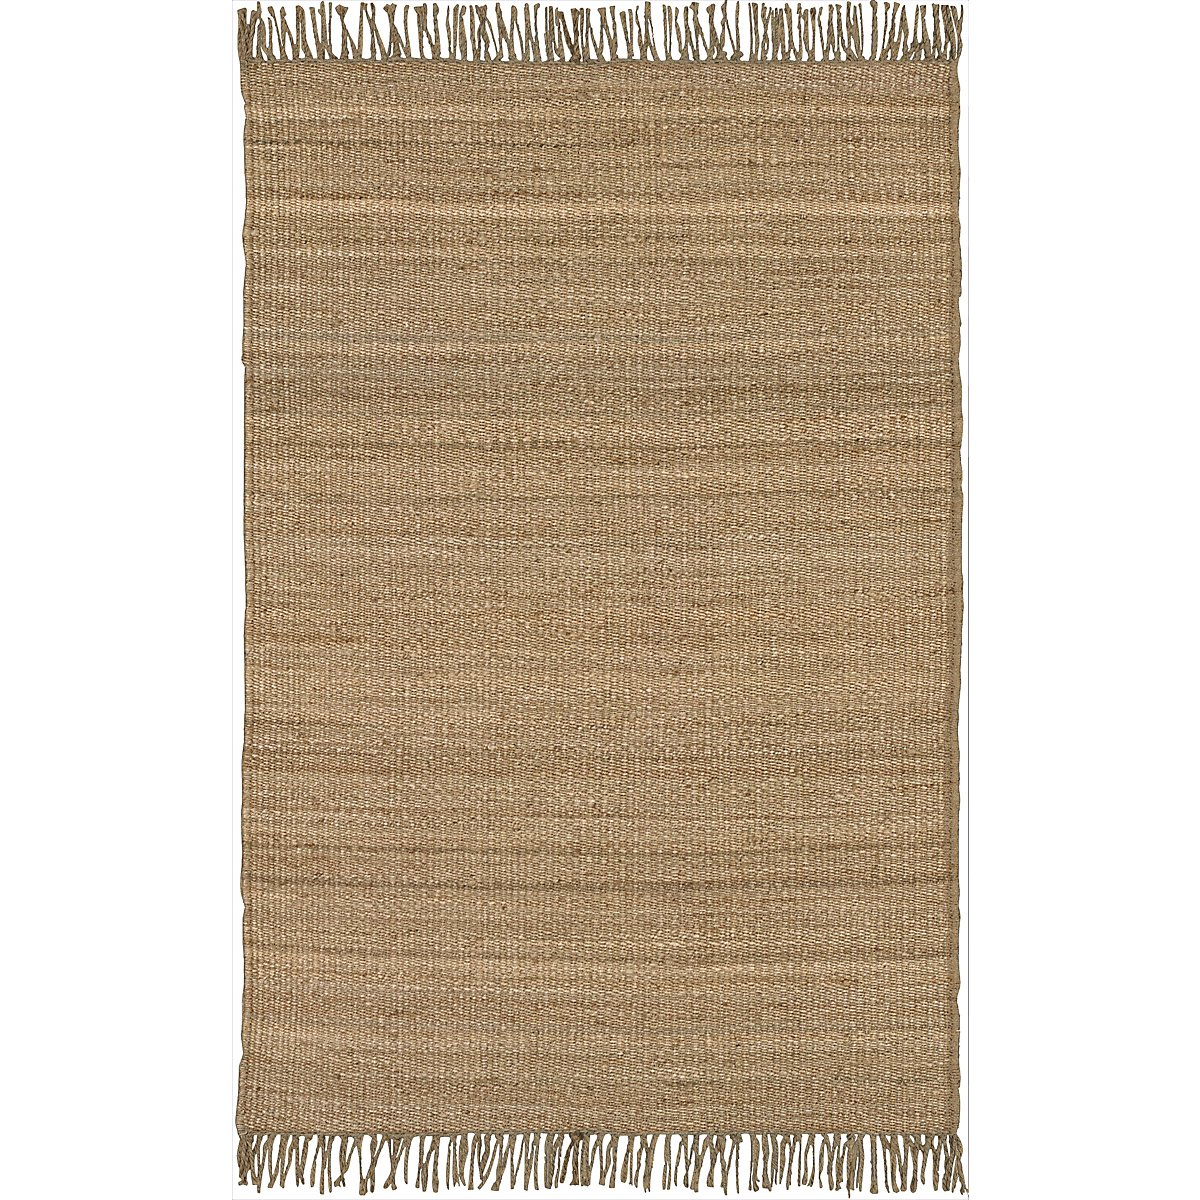 Fringe Lt Brown 5X8 Area Rug